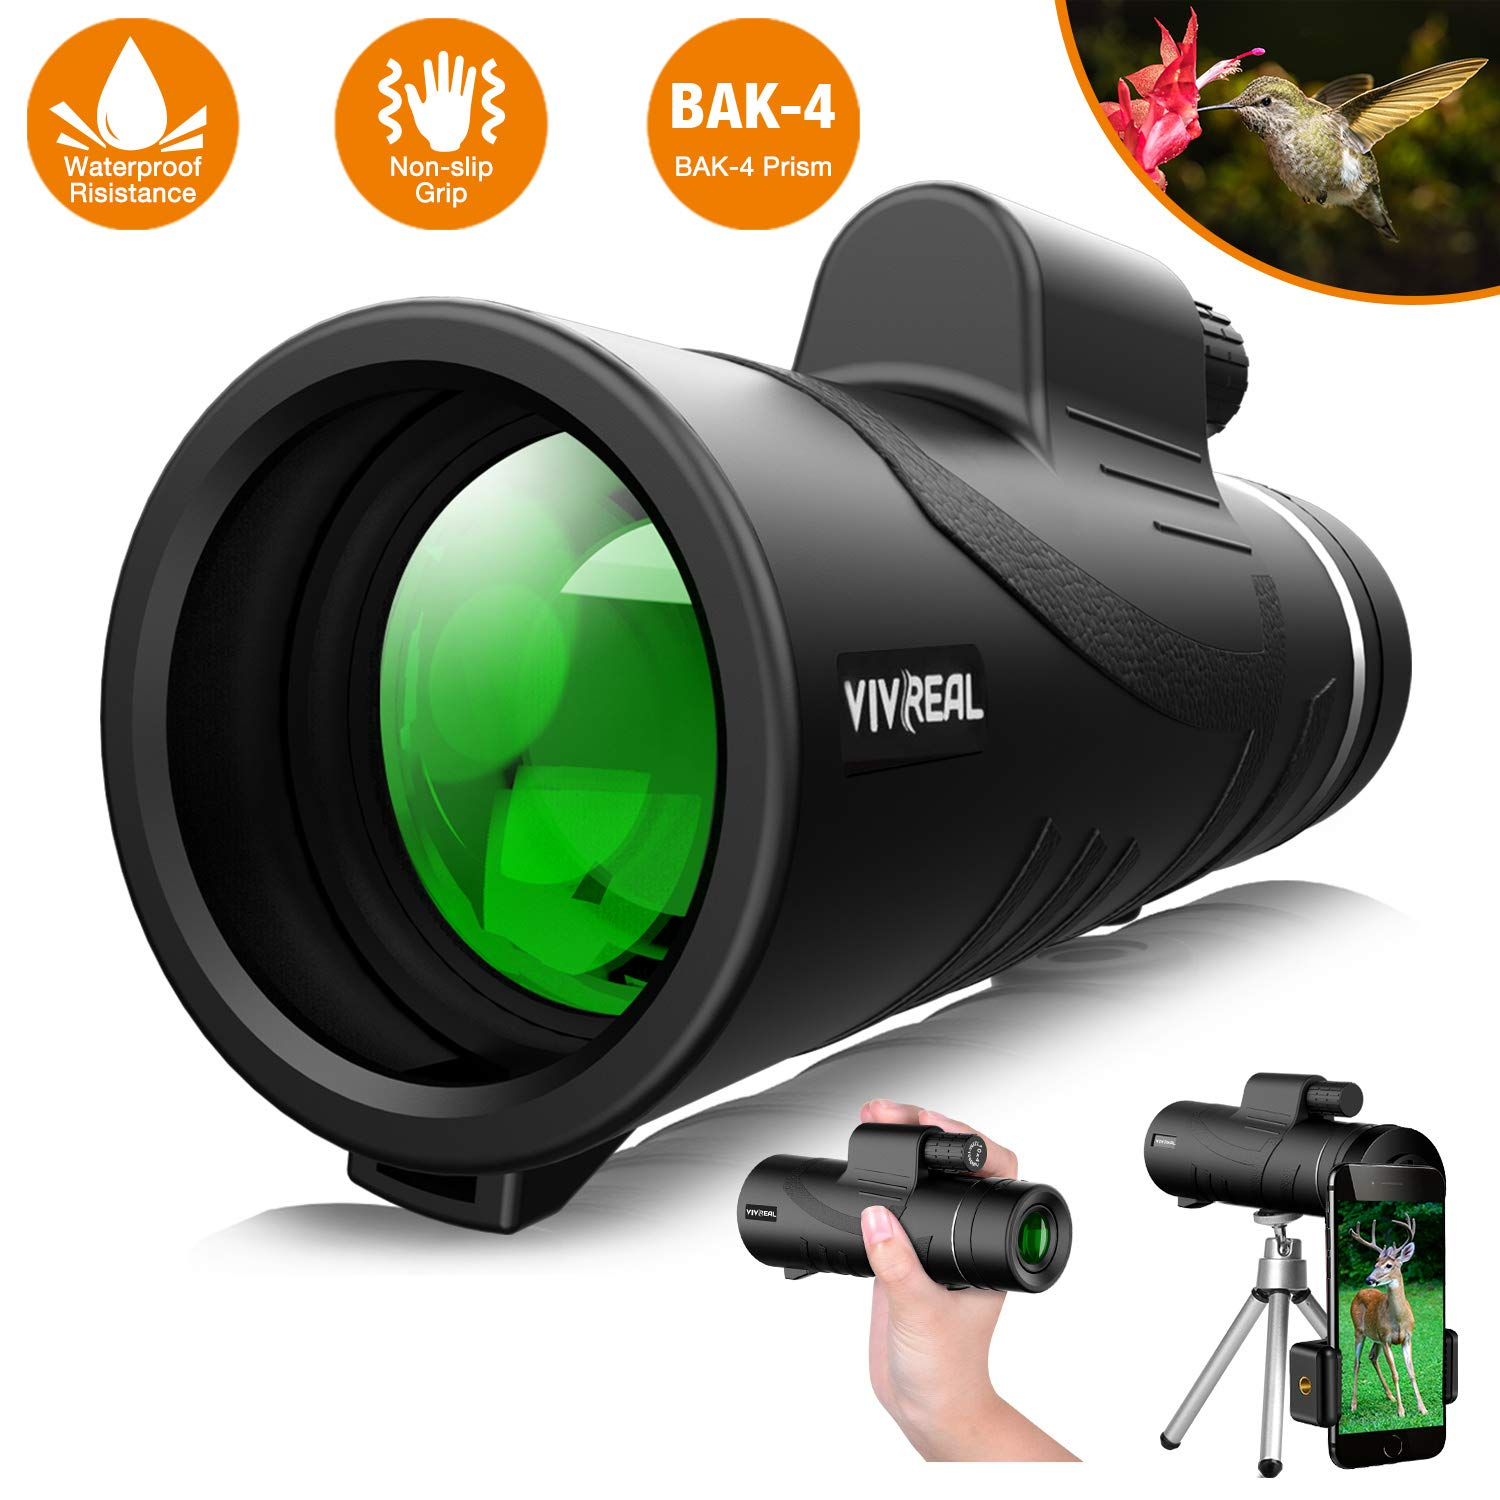 Monocular Telescope, 12X50 High Power HD Monocular with Smartphone Holder & Tripod - [2019 Newest] Waterproof Monocular with Durable and Clear FMC BAK4 Prism for Bird Watching, Camping, Hiking, Match by VIVREAL